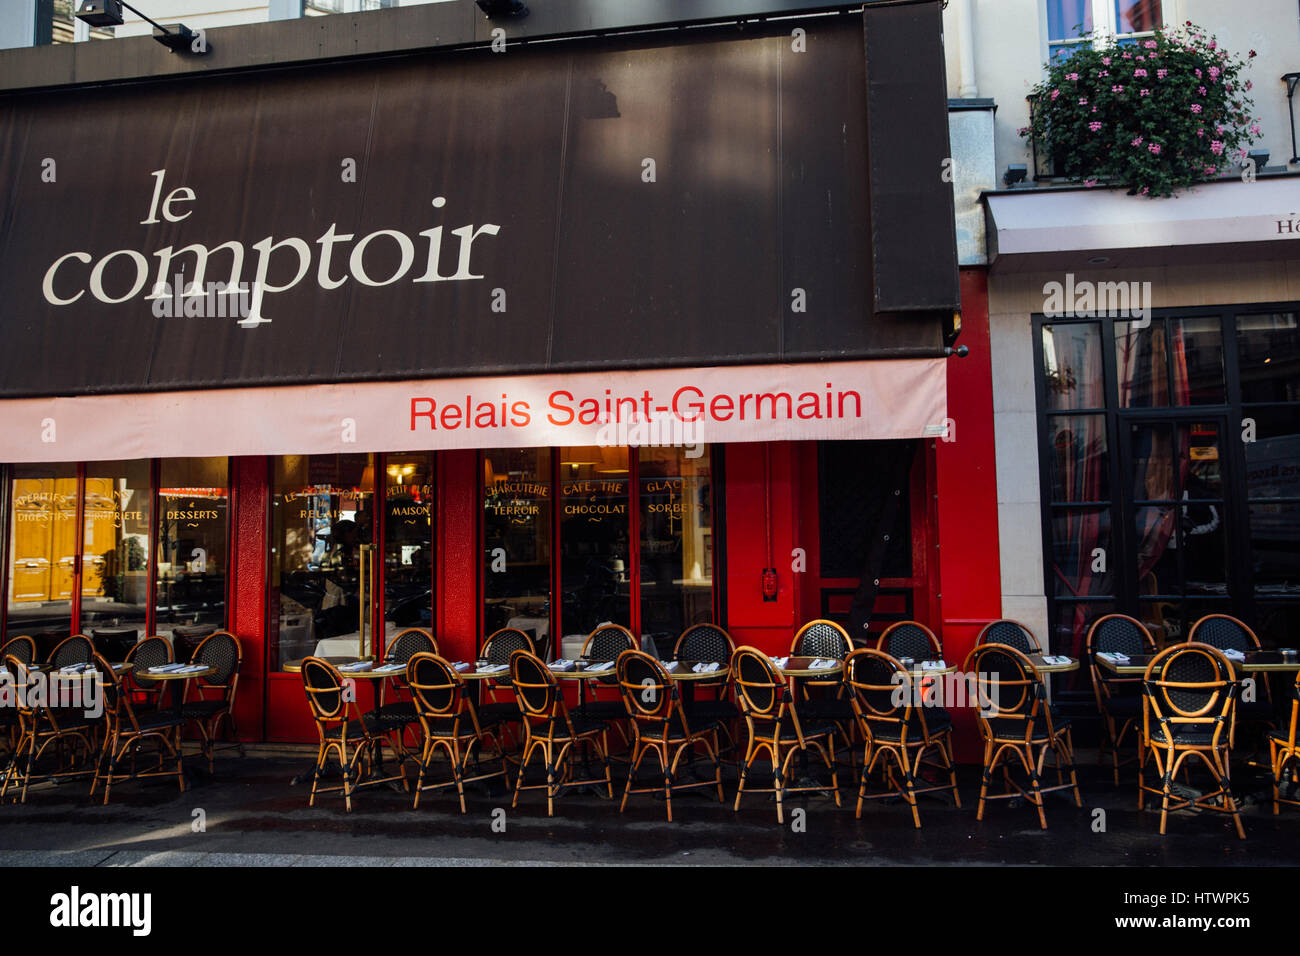 Le comptoir restaurant paris stock photo 135790905 alamy - Le comptoir paris restaurant ...